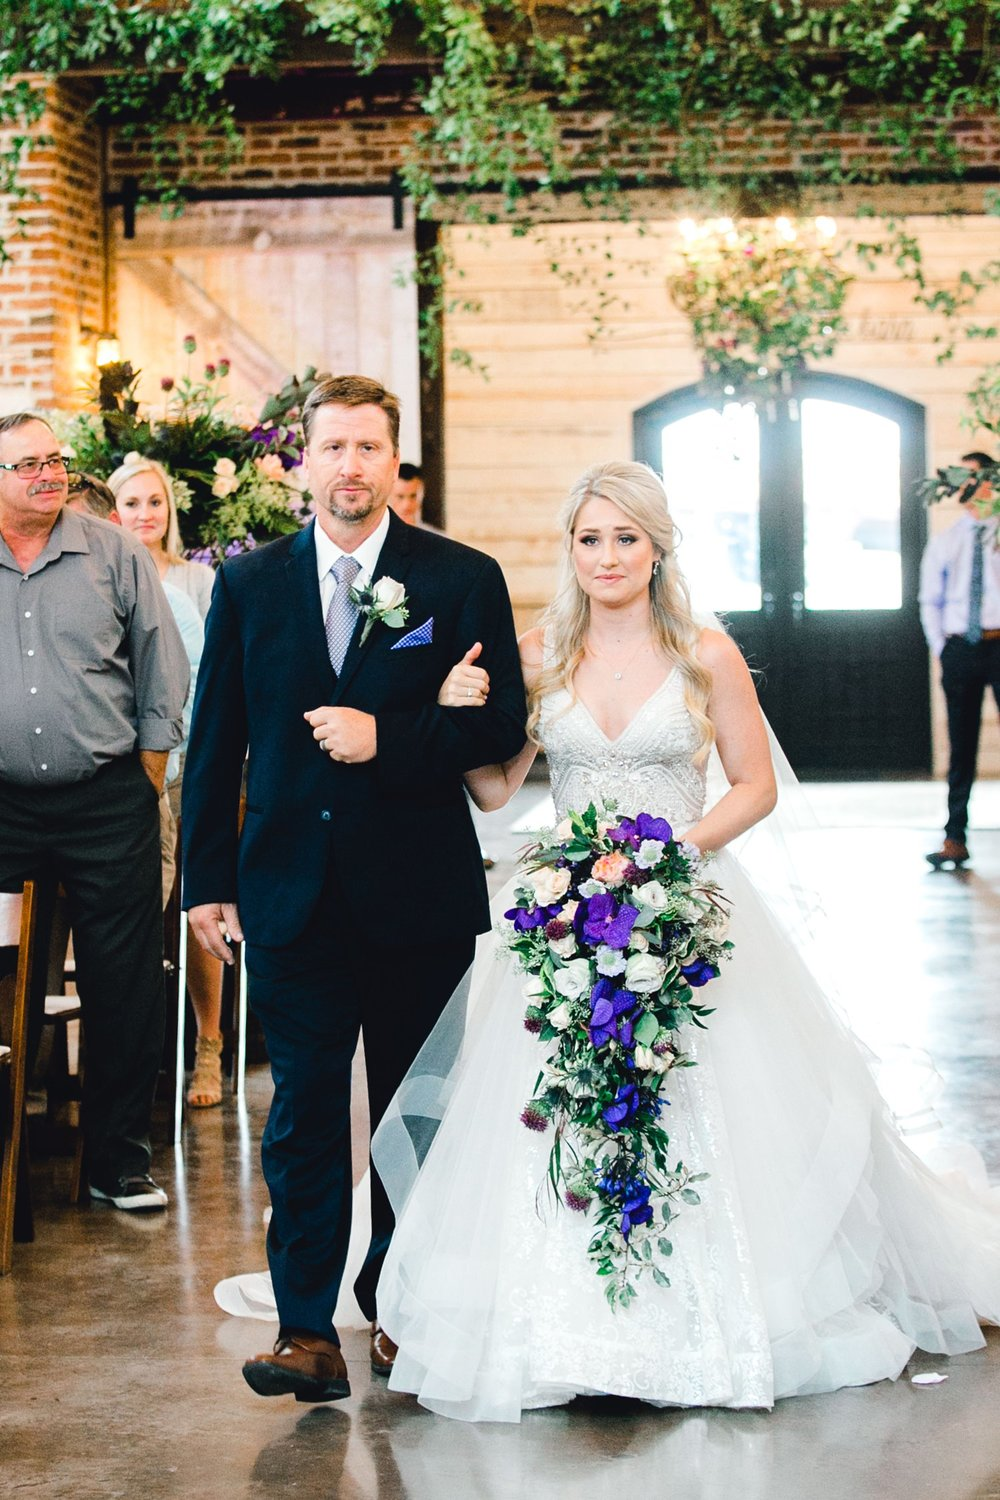 KAITLYN_AND_ZACHARY_HUNT_ALLEEJ_LUBBOCK_WEDDING_PHOTOGRAPHER_EBERLEY_BROOKS_EVENTS_0097.jpg